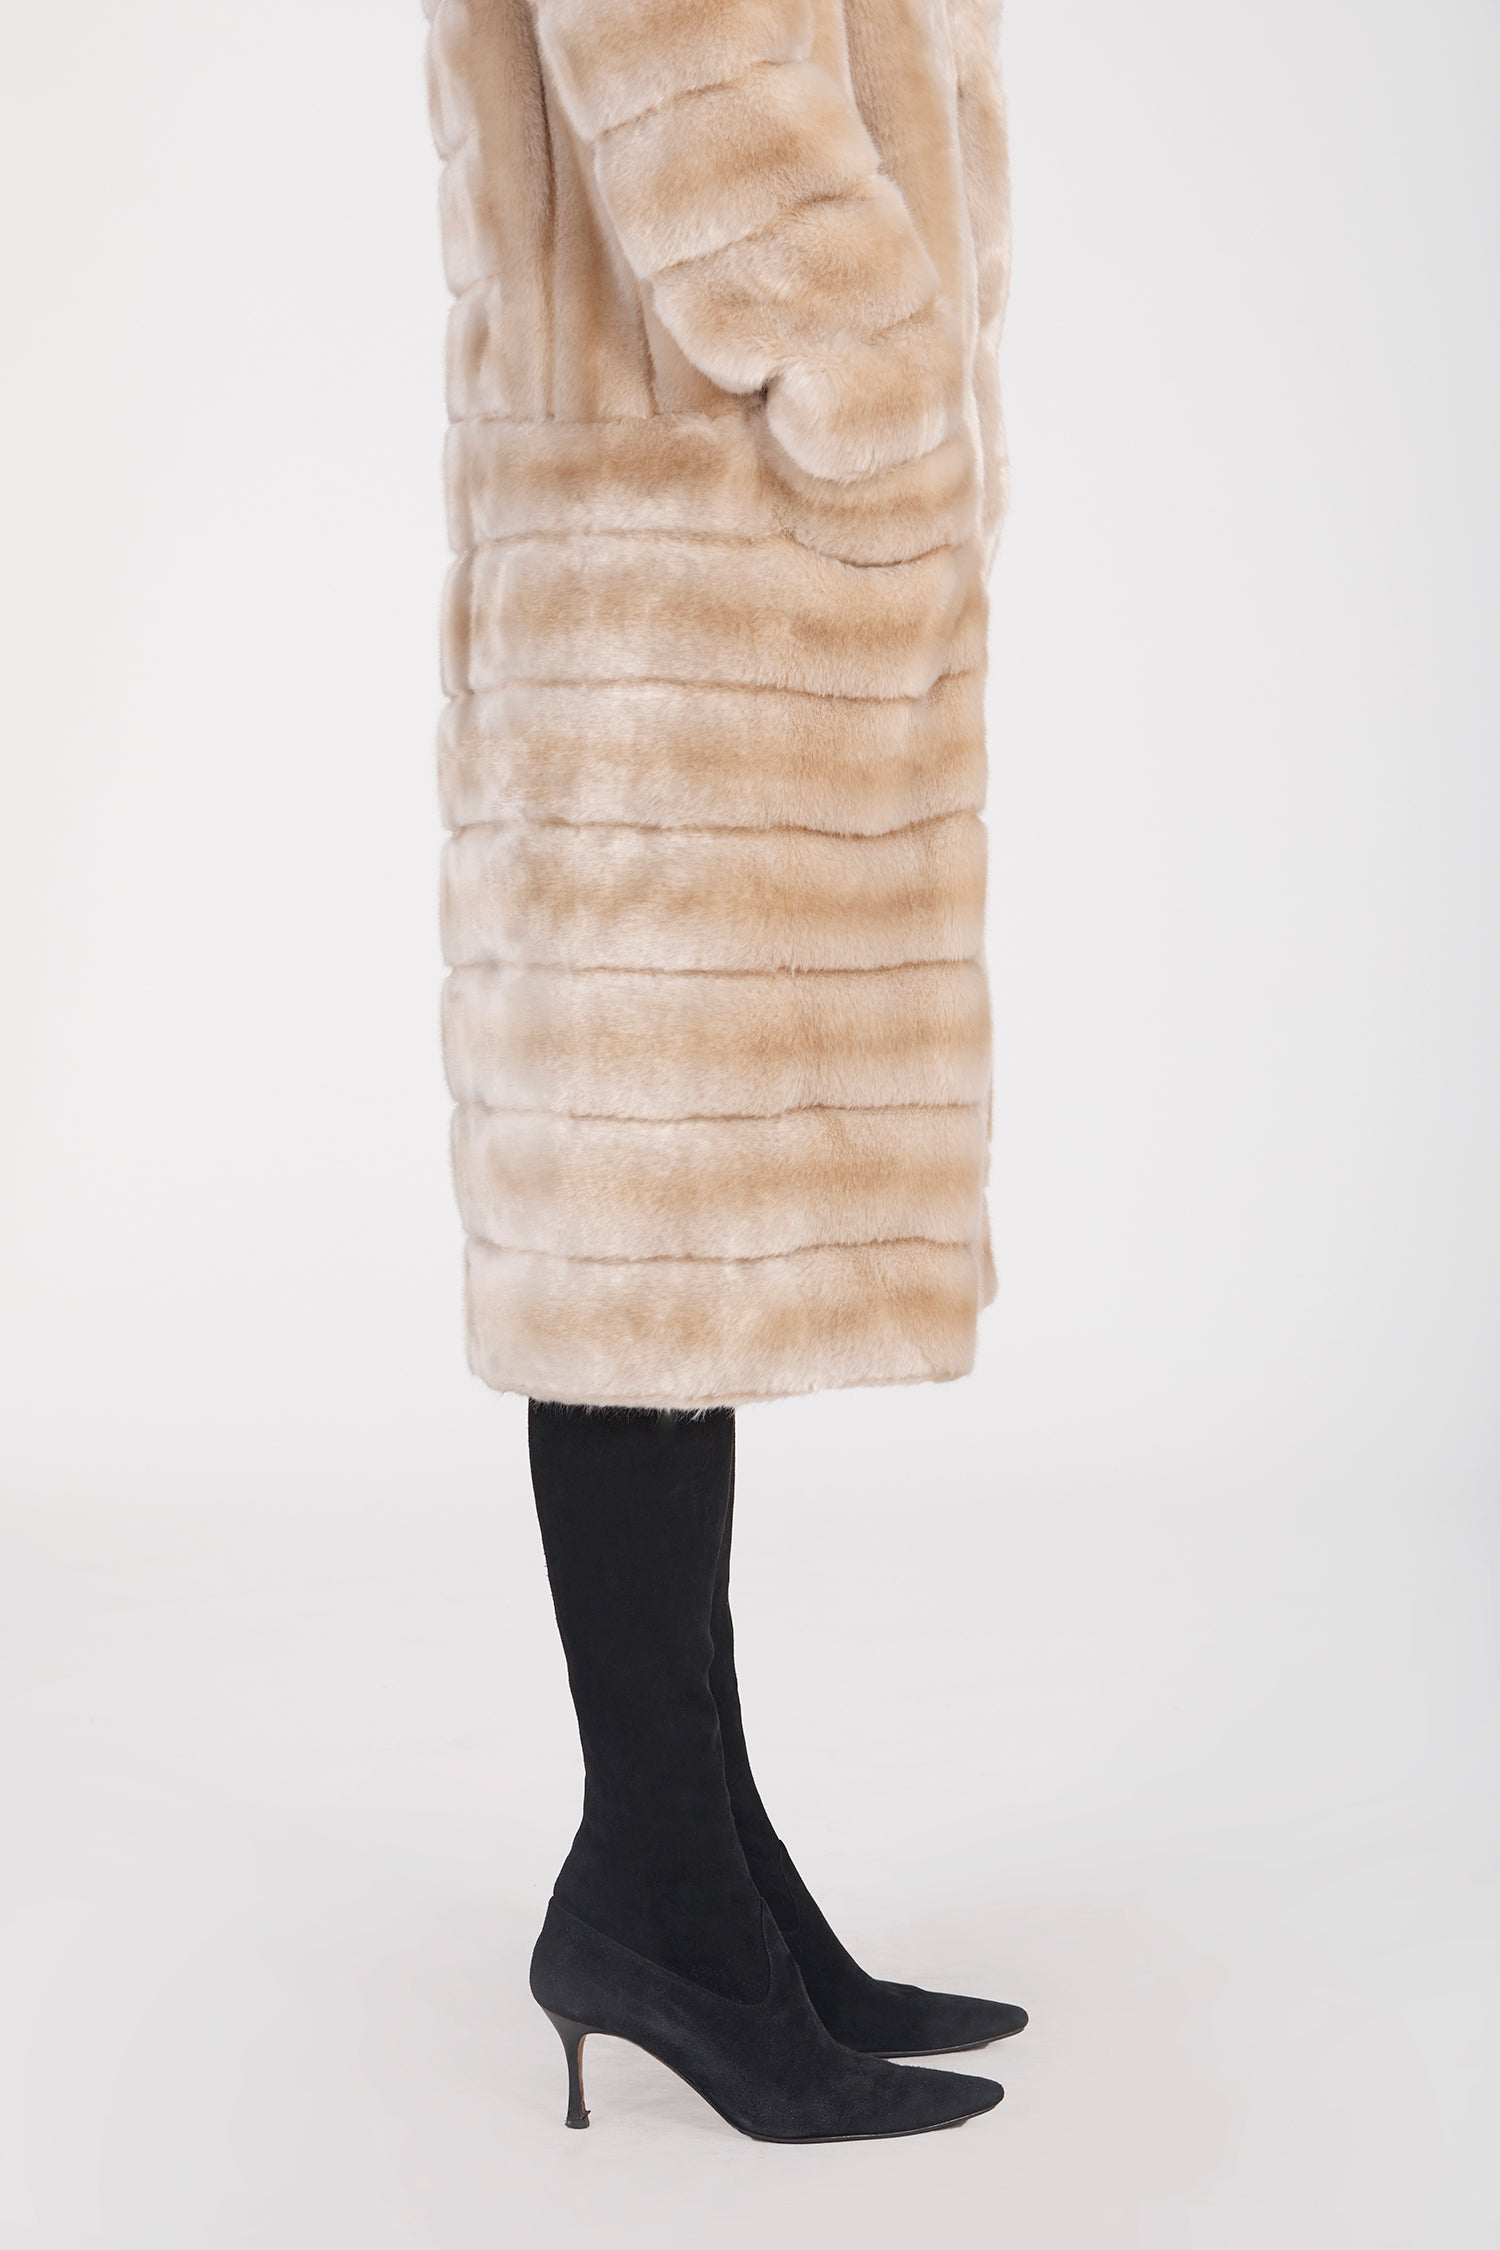 Marei1998's Timeless Echinacea Long Faux Fur Coat In The Classiest Natural/Beige Color. Featuring Calf Length, Oversized Silhouette And Wide Shawl Neckline. Investment Piece / Winter Essential. As Worn By The Model. Close-Up View. Resort 2020 Collection - Furless Friendship.